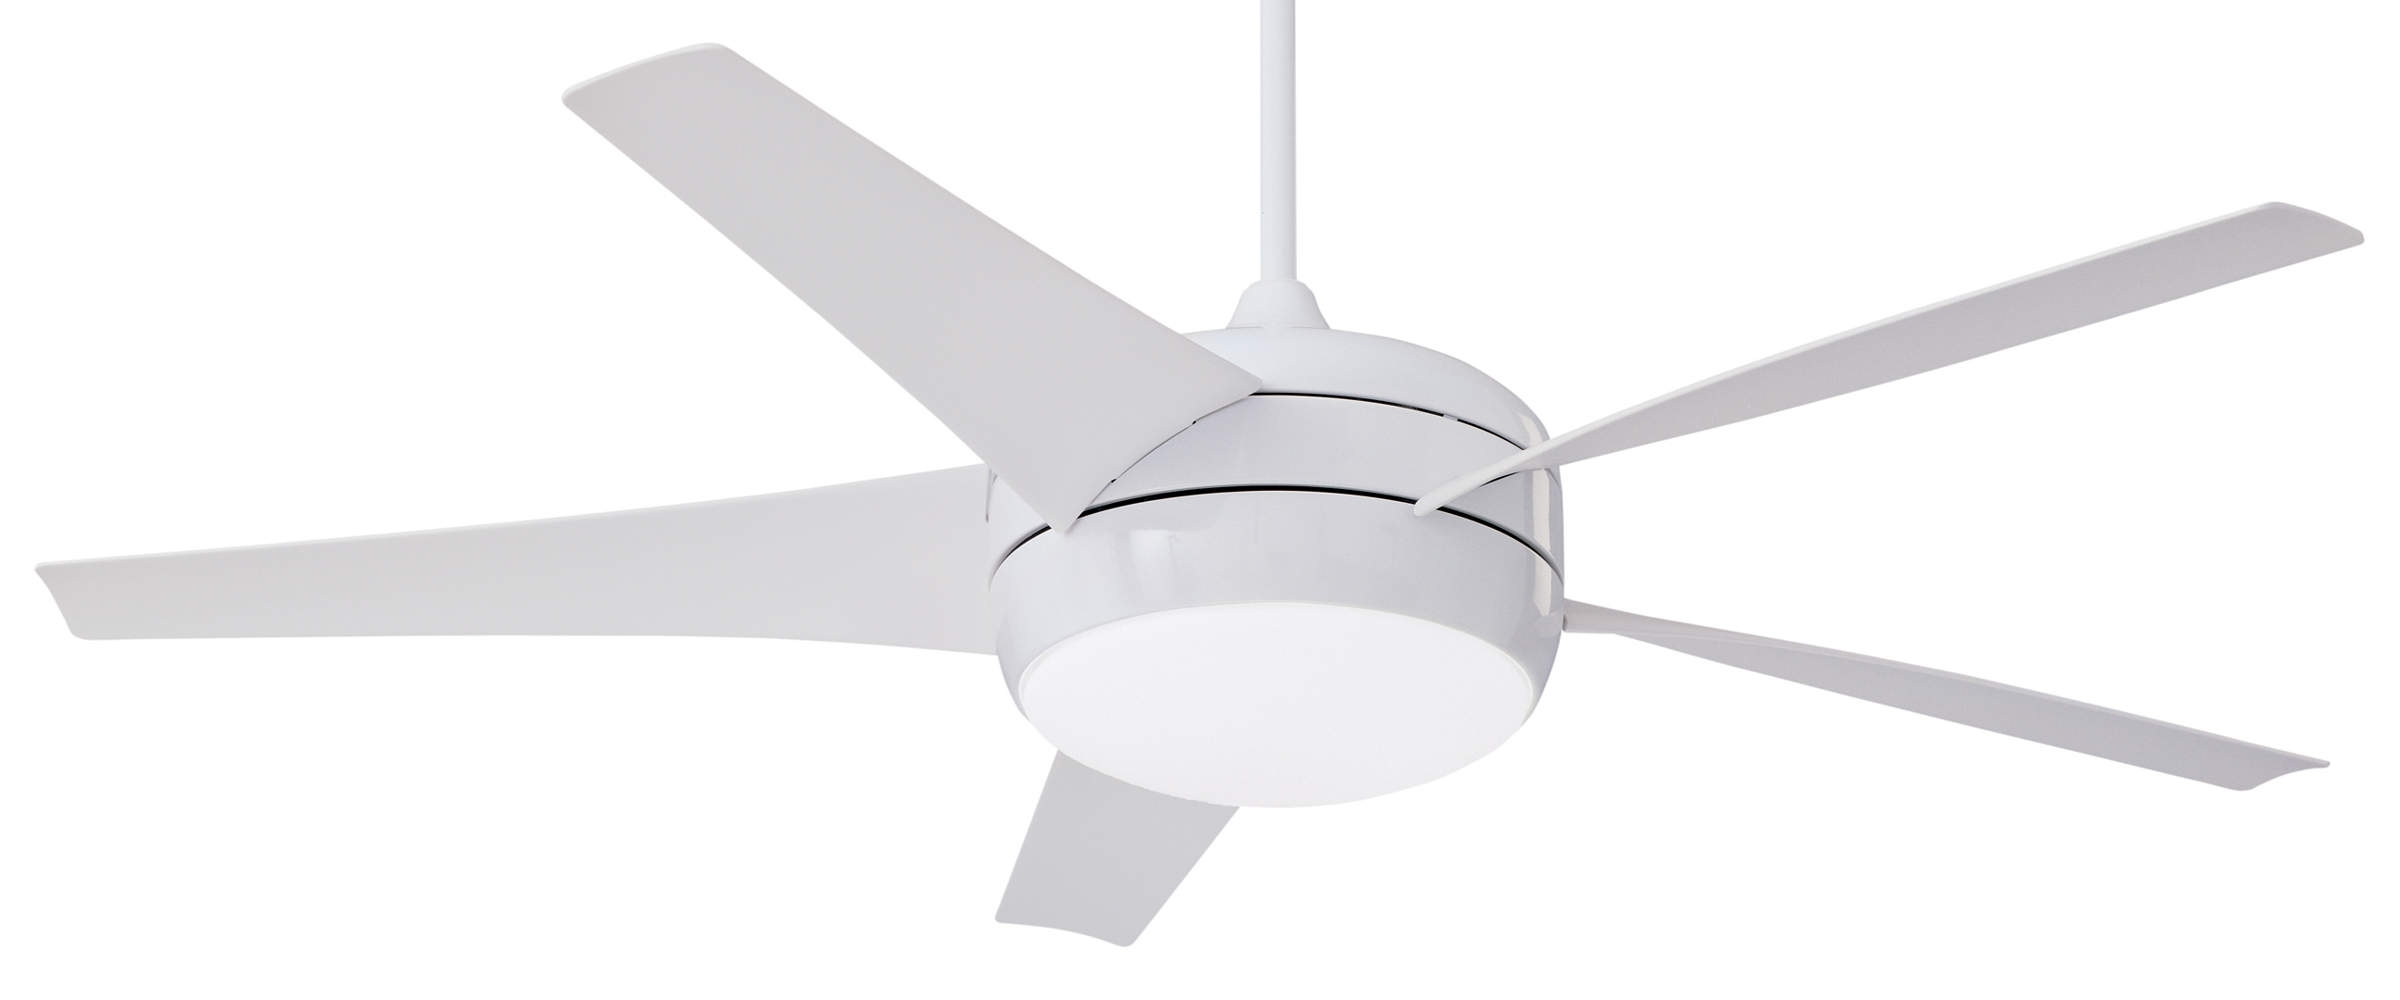 Emerson Midway Eco Dc Motor Ceiling Fan Cfww In Gloss White With With Regard To Most Up To Date Outdoor Ceiling Fans With Dc Motors (View 3 of 20)